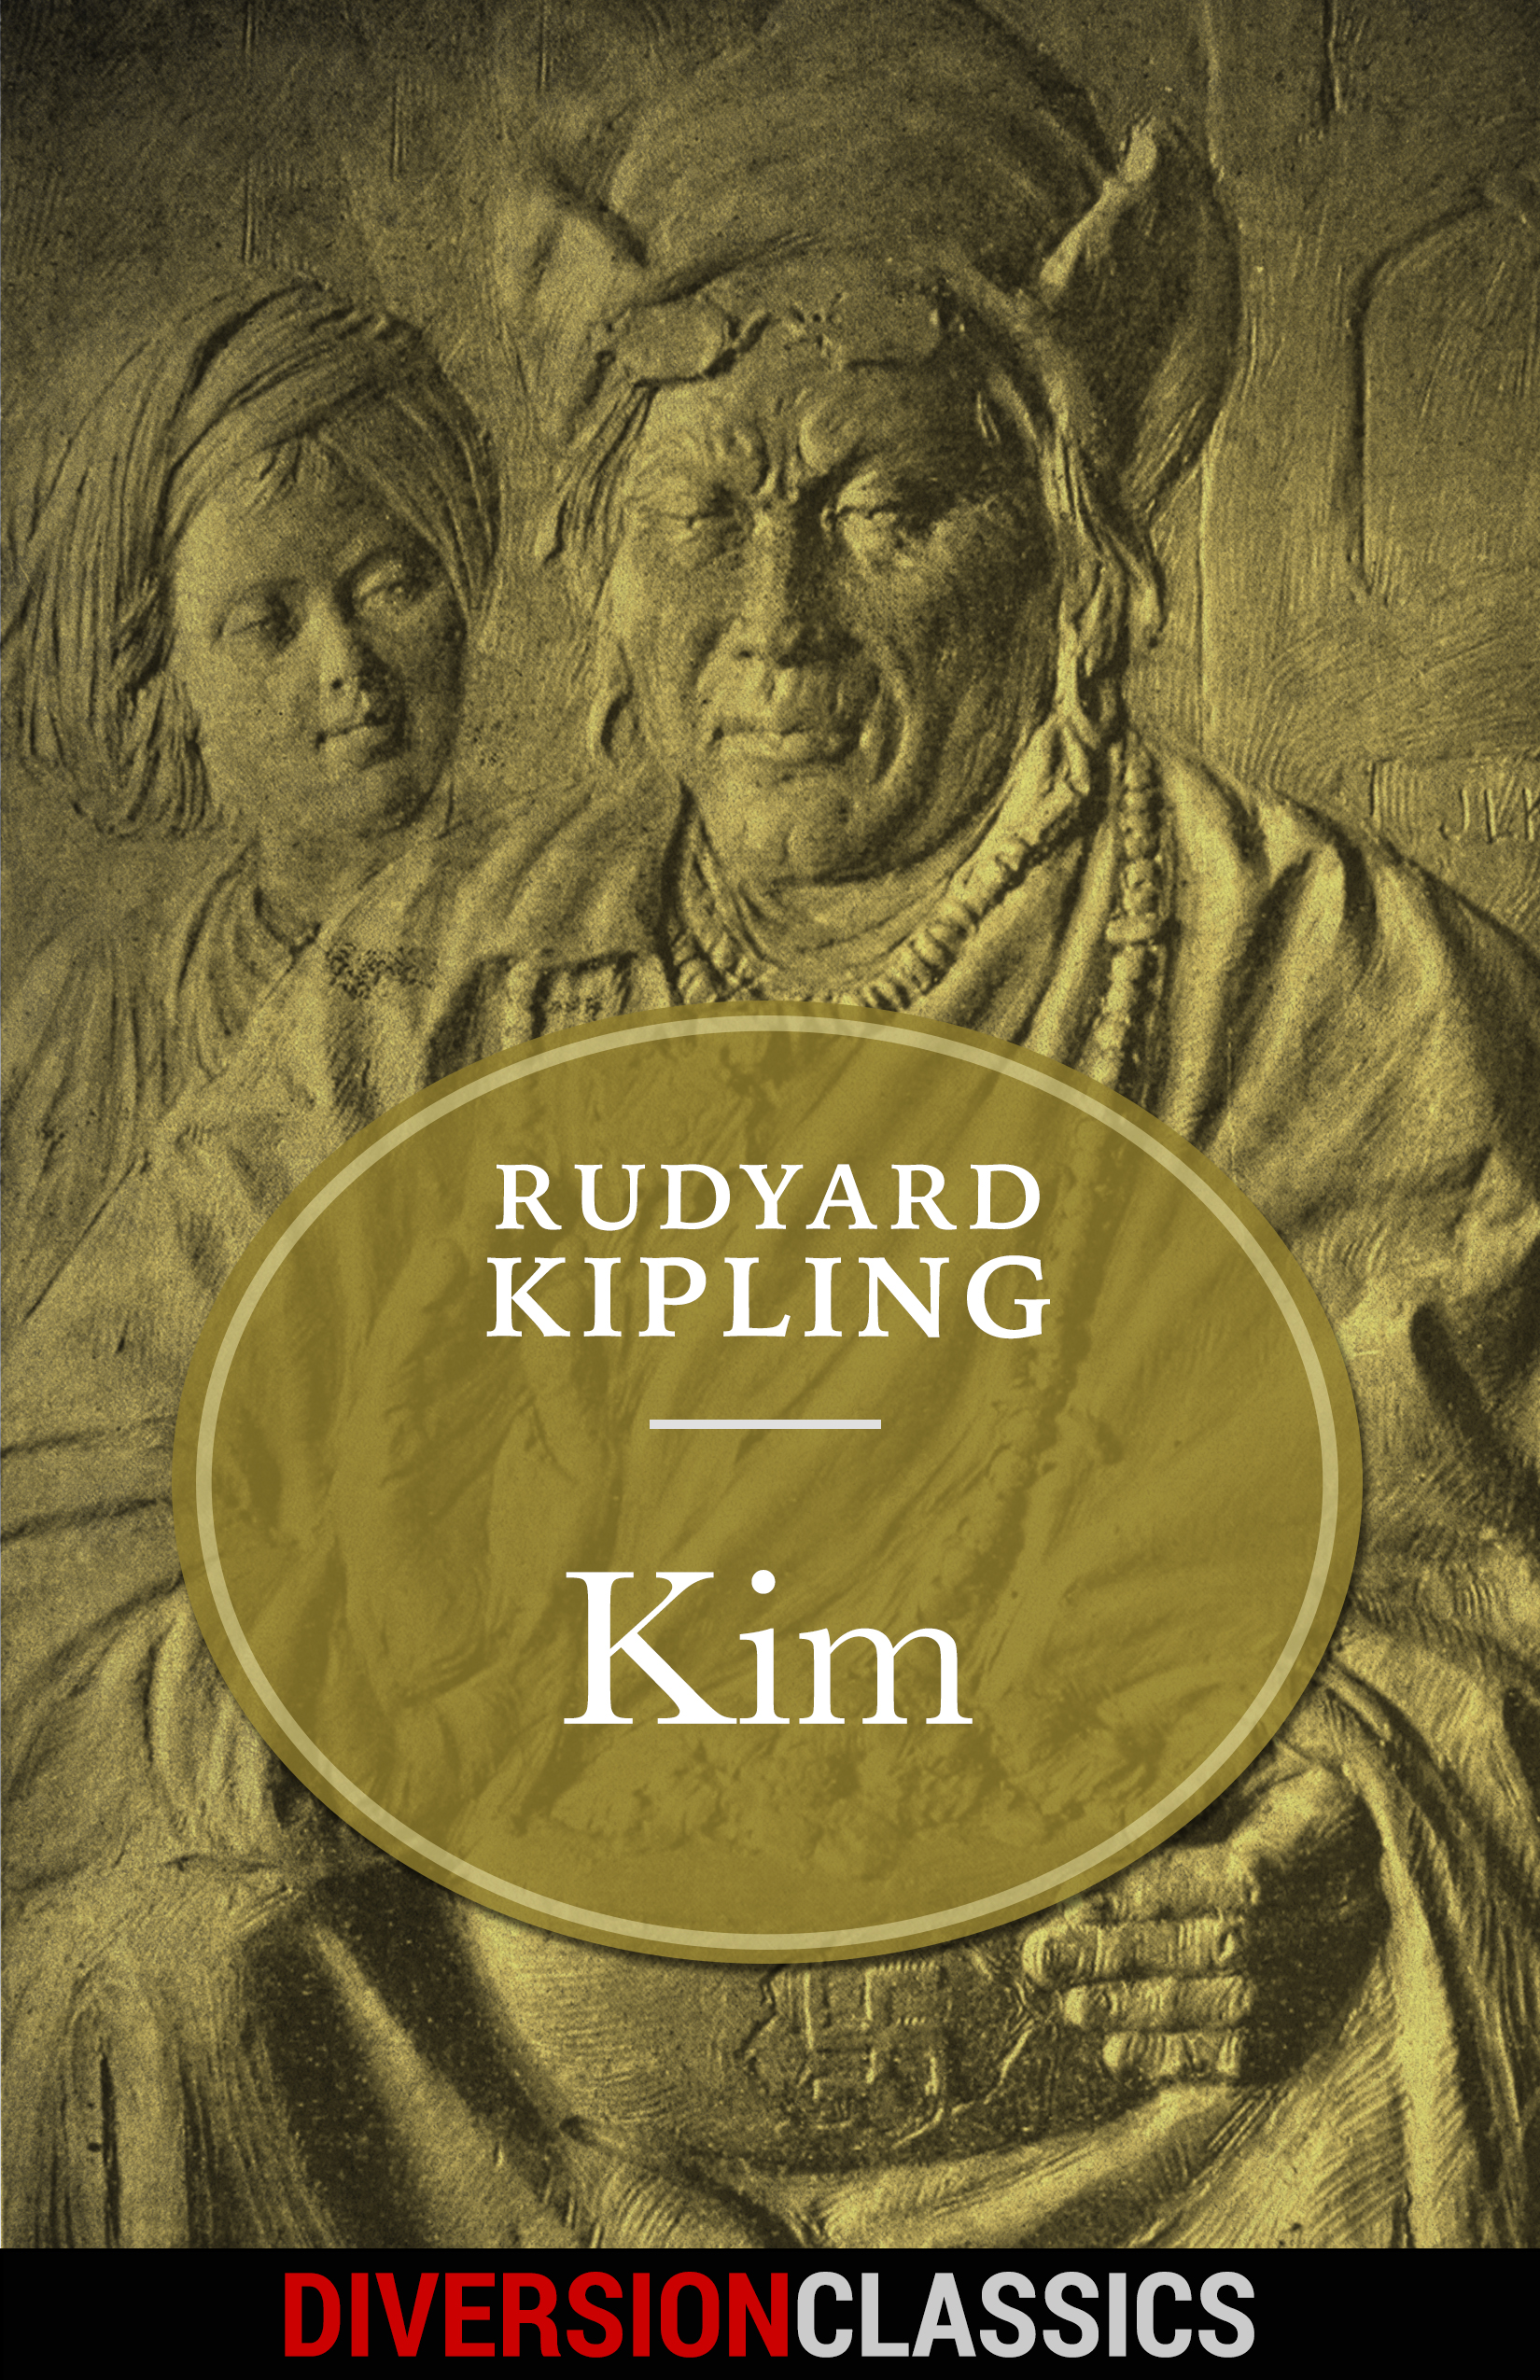 a reading report on kim by rudyard kipling Parents need to know that kim is widely considered to be nobel prize-winning author rudyard kipling's greatest work the novel depicts the world of a half-irish white boy finding his way amid the many religious, cultural, and political factions vying for power in india at the turn of the 20th century.